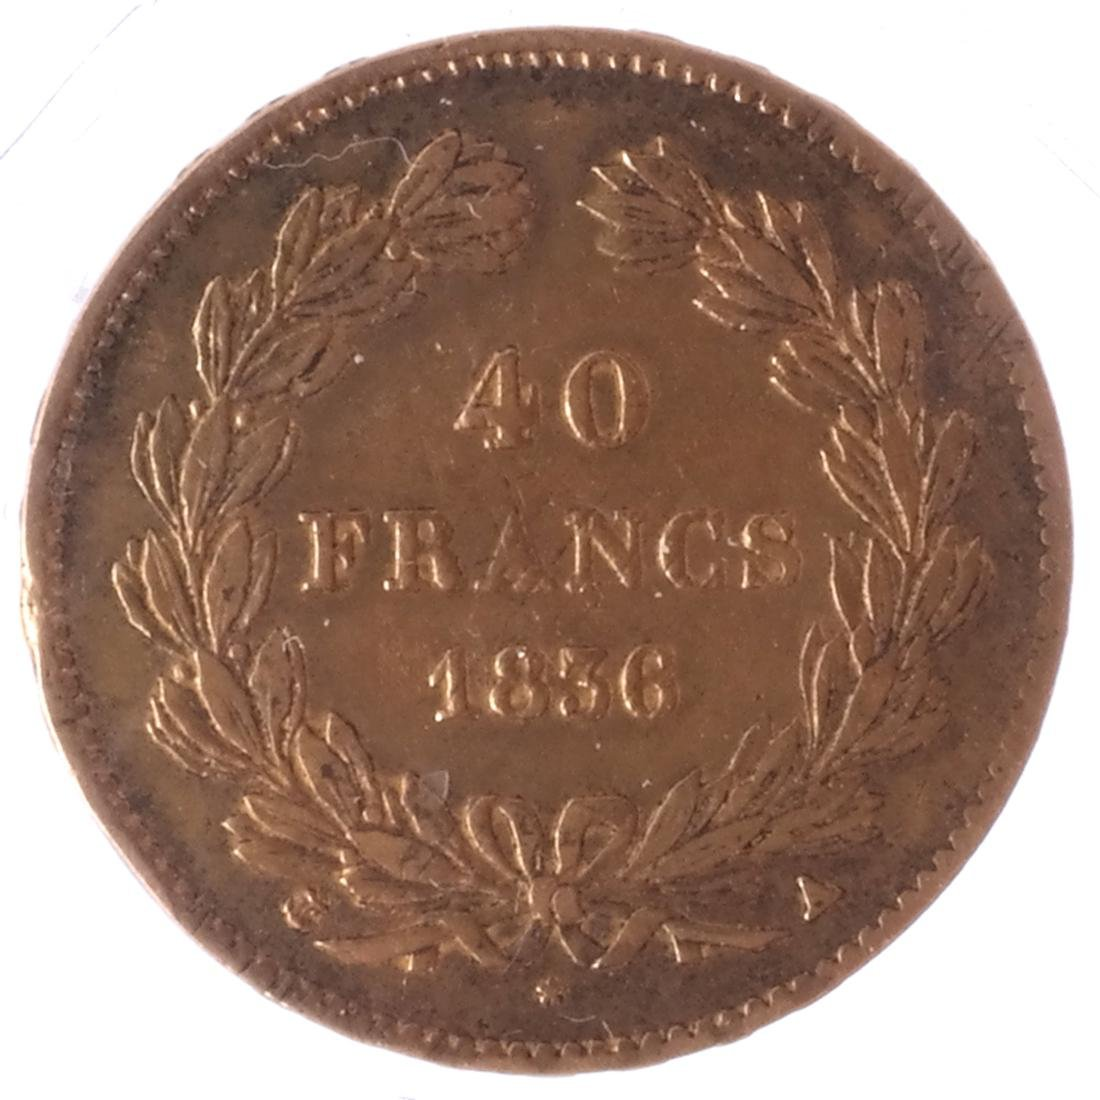 1856 40 Francs, Louis Philippe I, Gold - 2